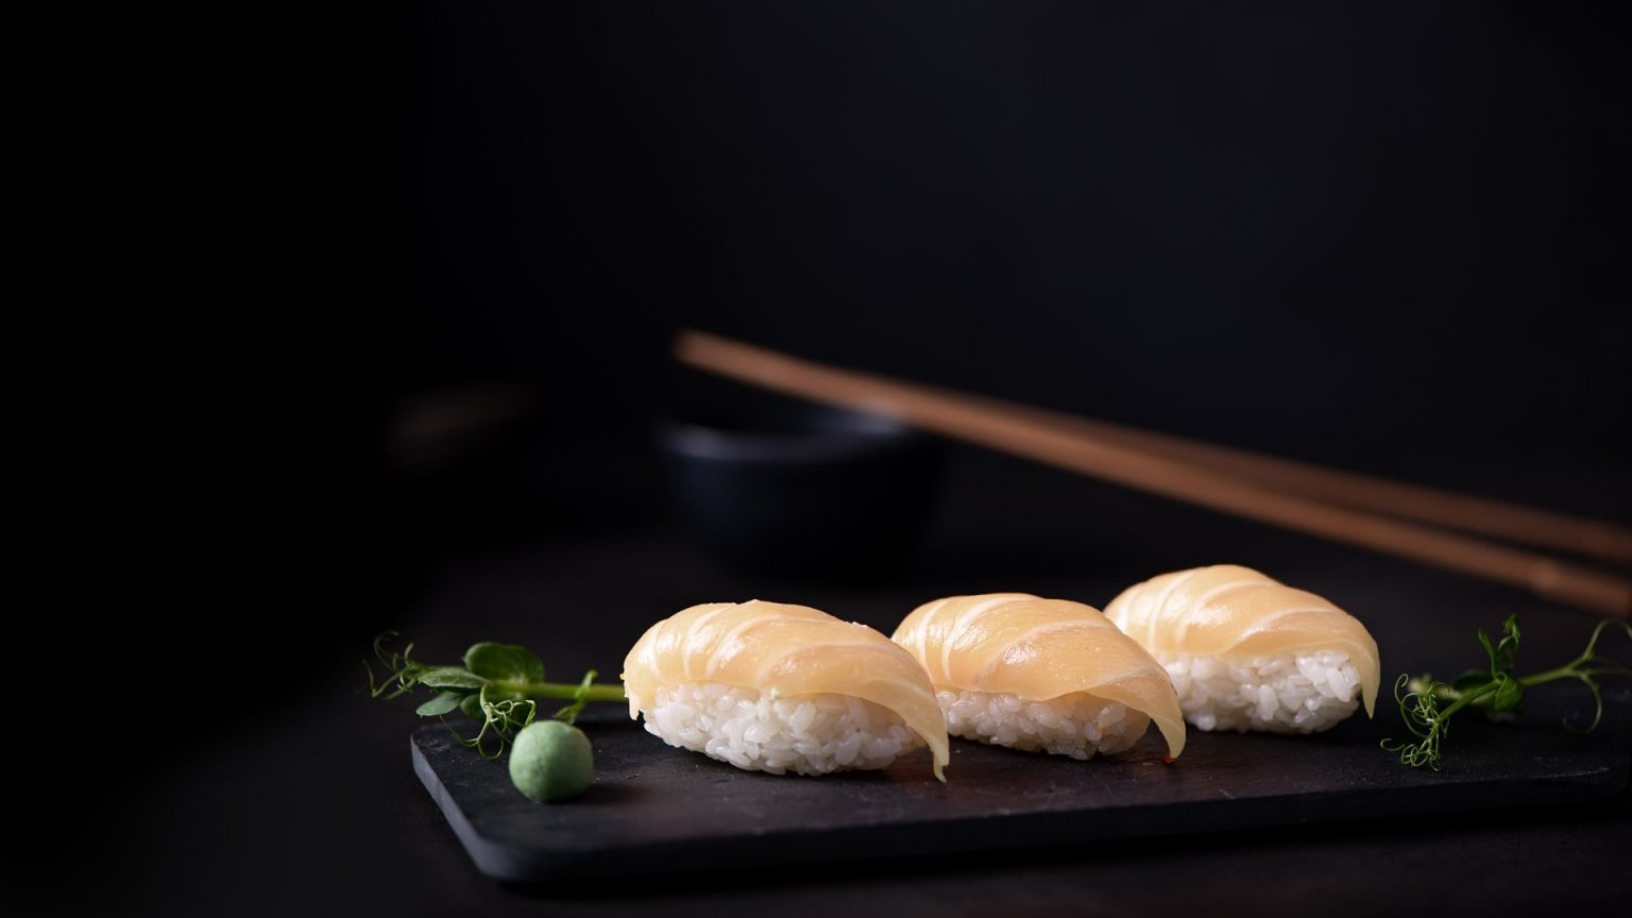 AquaCultured Foods: World's first whole-cut vegan seafood made through microbial fermentation